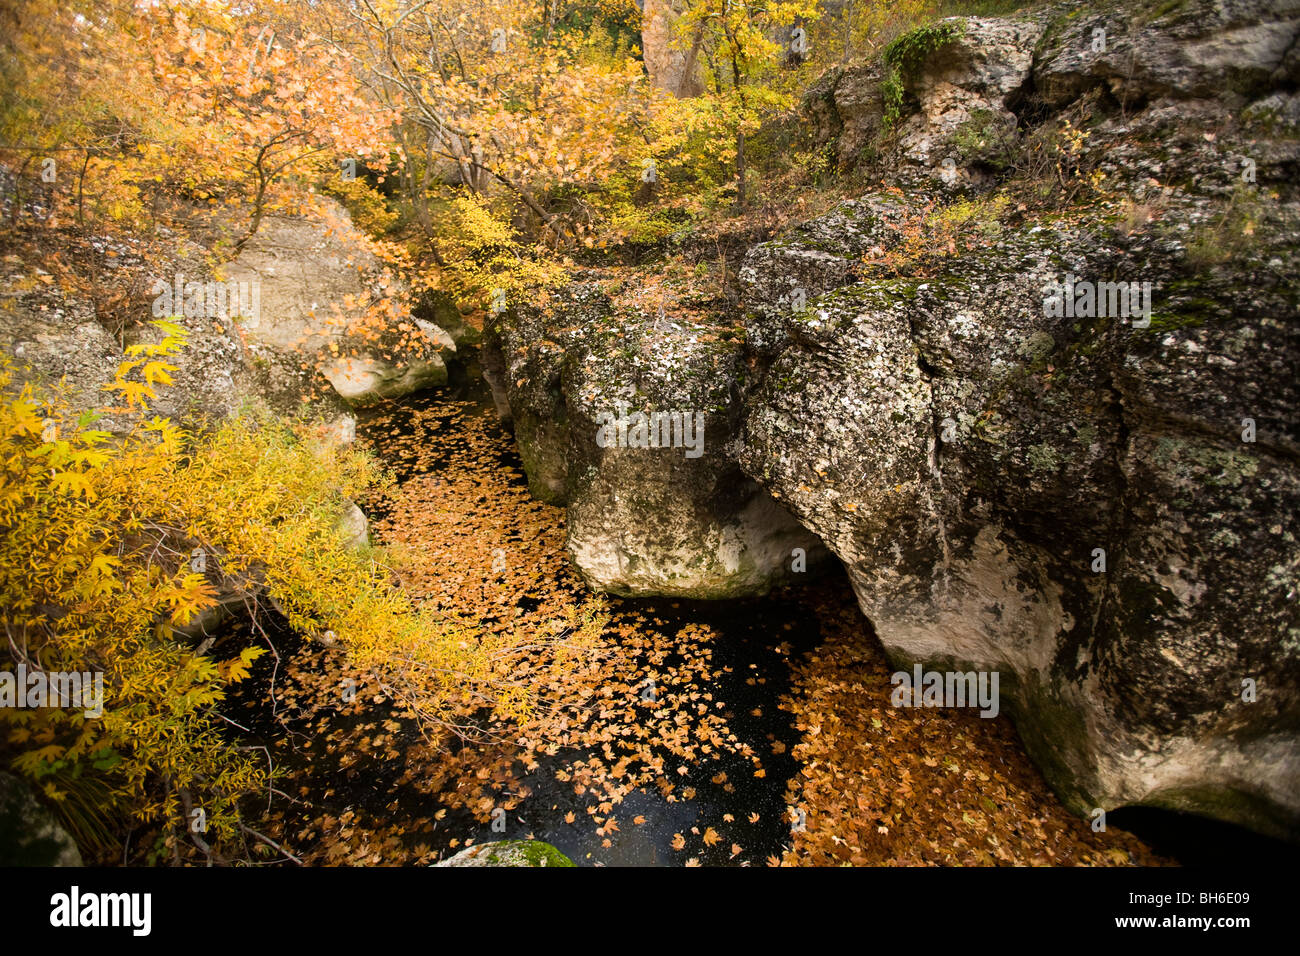 Scenic view of canyons in Safranbolu Turkey - Stock Image